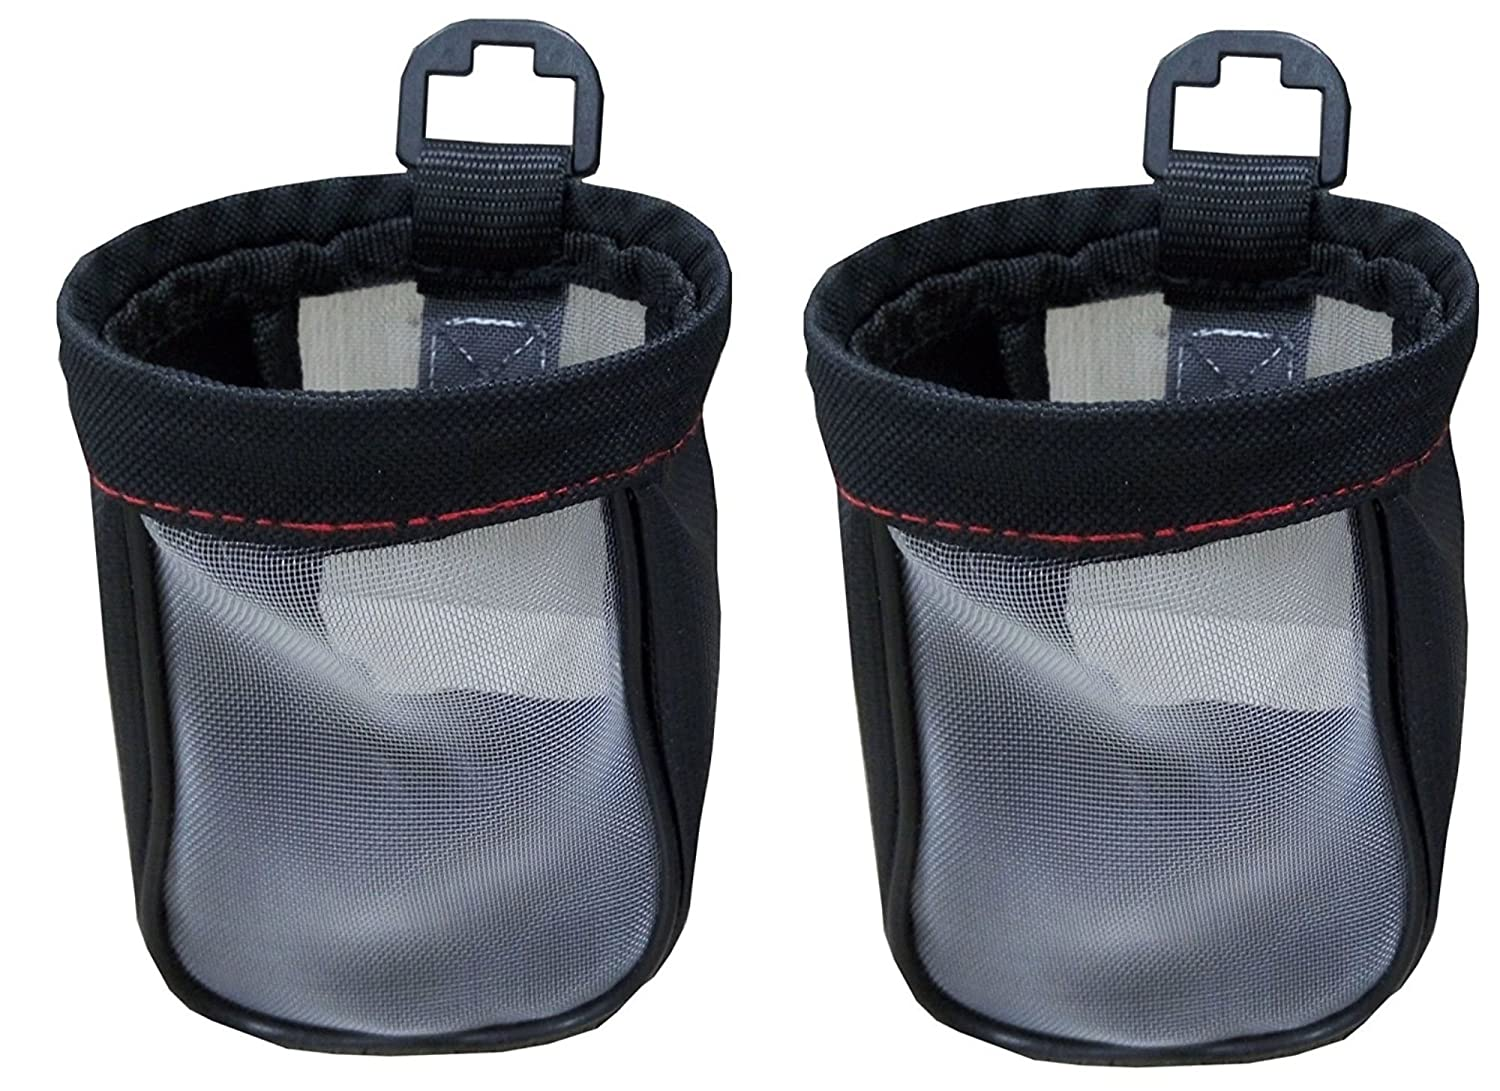 XtremeAuto® X2 Universal Car / Truck / Lorry / Camper Van Fabric Drink Cup / Mug Can Bottle Holder Pouch XtremeAuto®